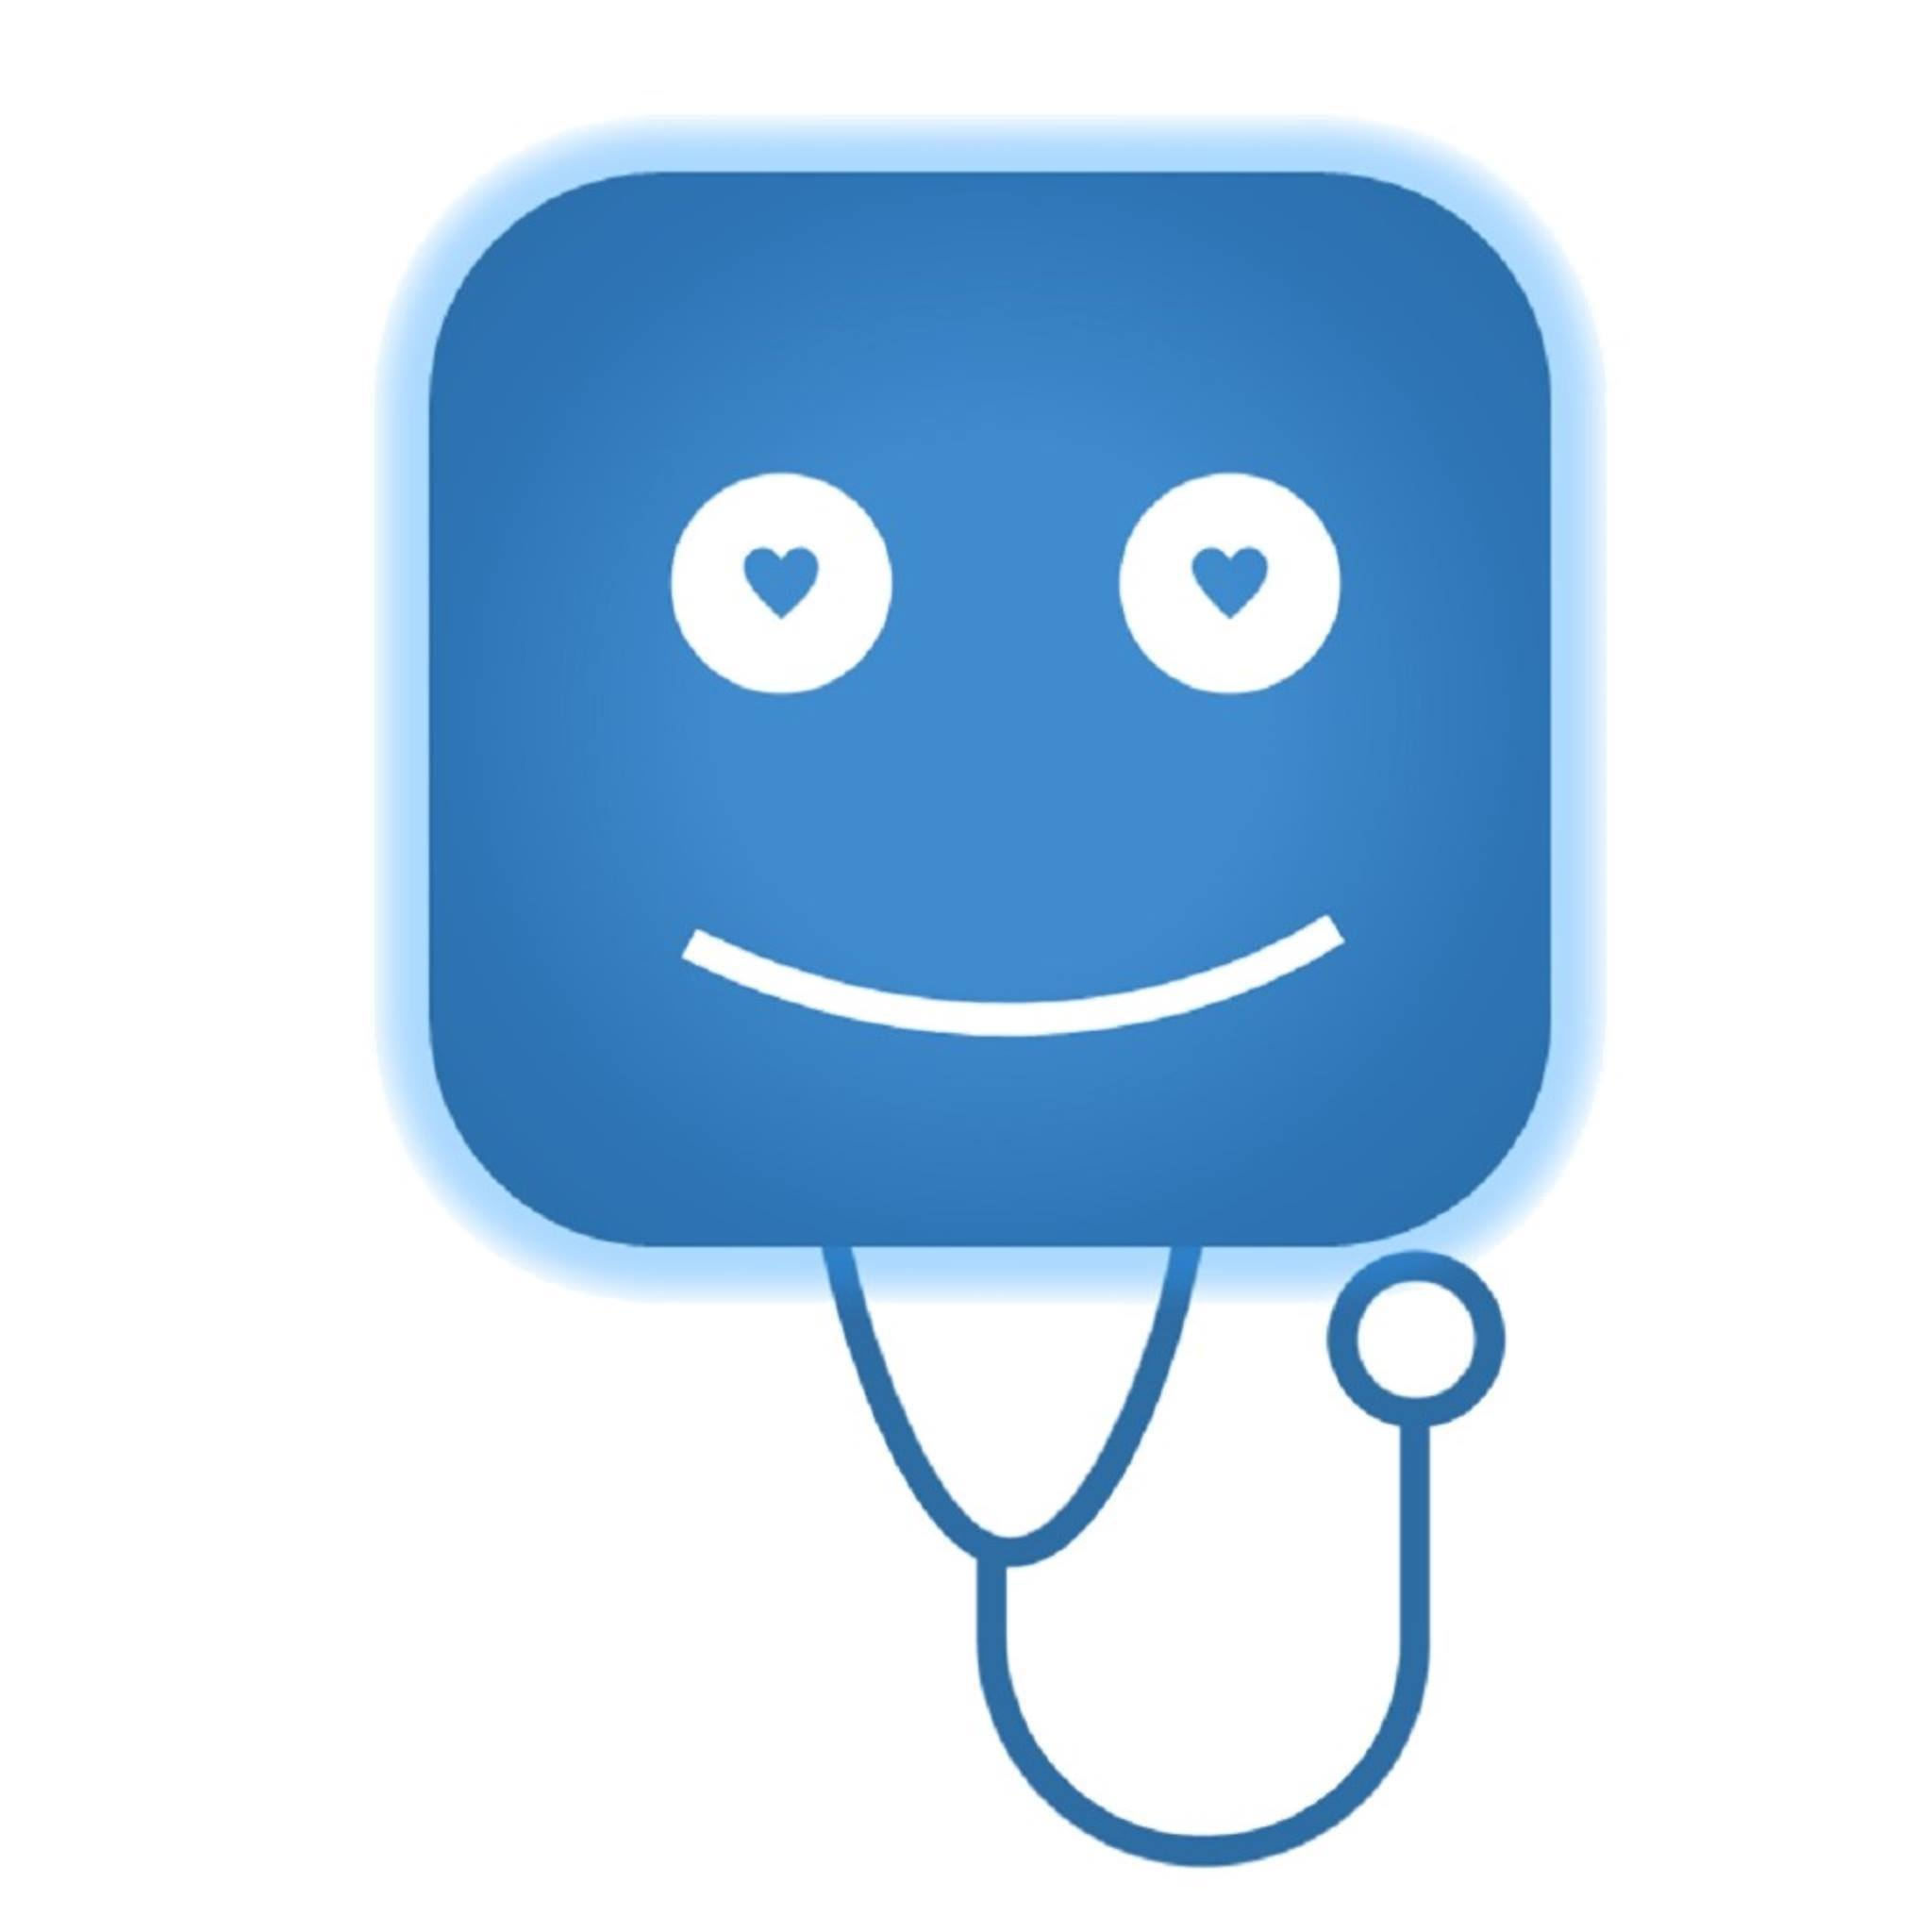 DoctorBOT for Facebook Messenger